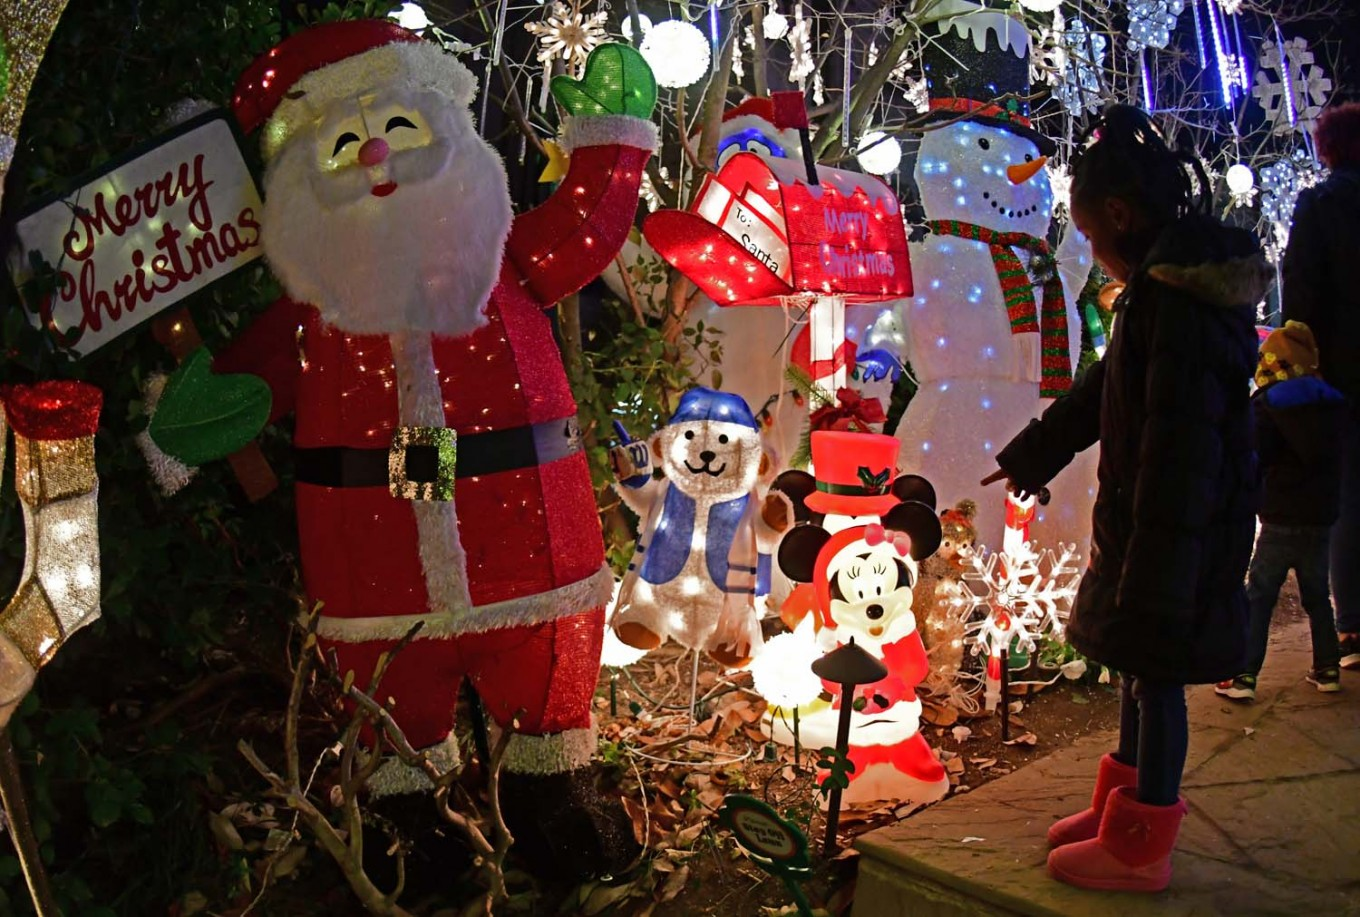 """A girl points at a Minnie Mouse on December 22, 2017 at """"Arbo & Santa's Dog Park"""", a residential front yard full of Christmas decorations set up by """"Mr. Holiday"""", a resident of Washington, DC who celebrates every single holiday of the year. AFP/Eva Hambach"""